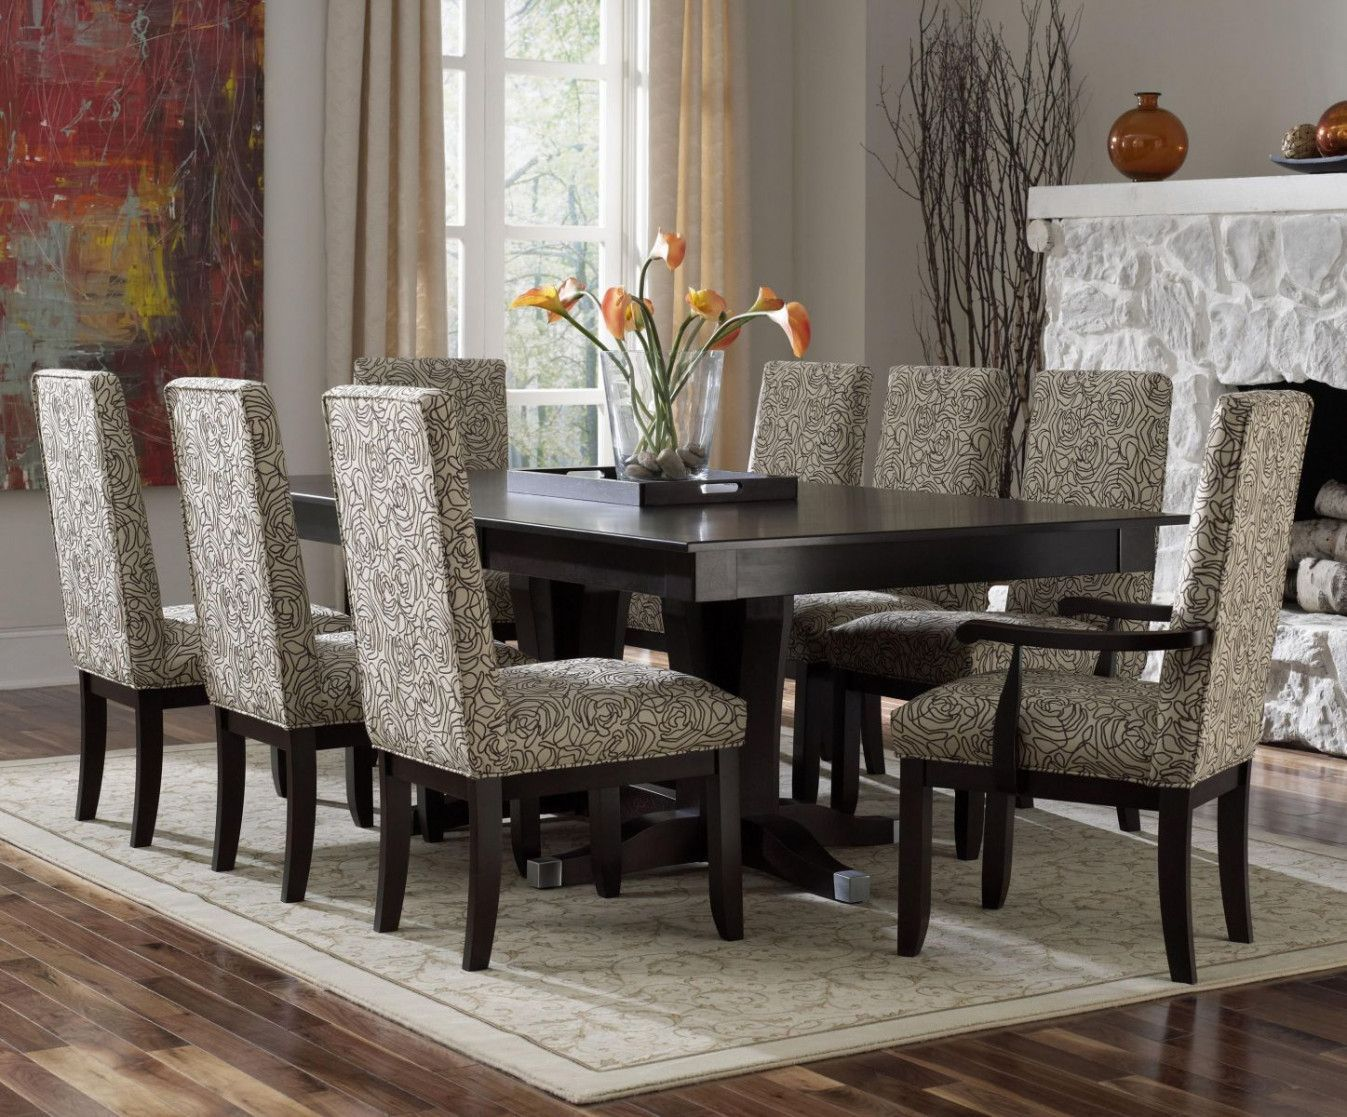 70 transitional dining room chairs luxury modern furniture check more at http www ezeebreathe com transitional dining room chairs